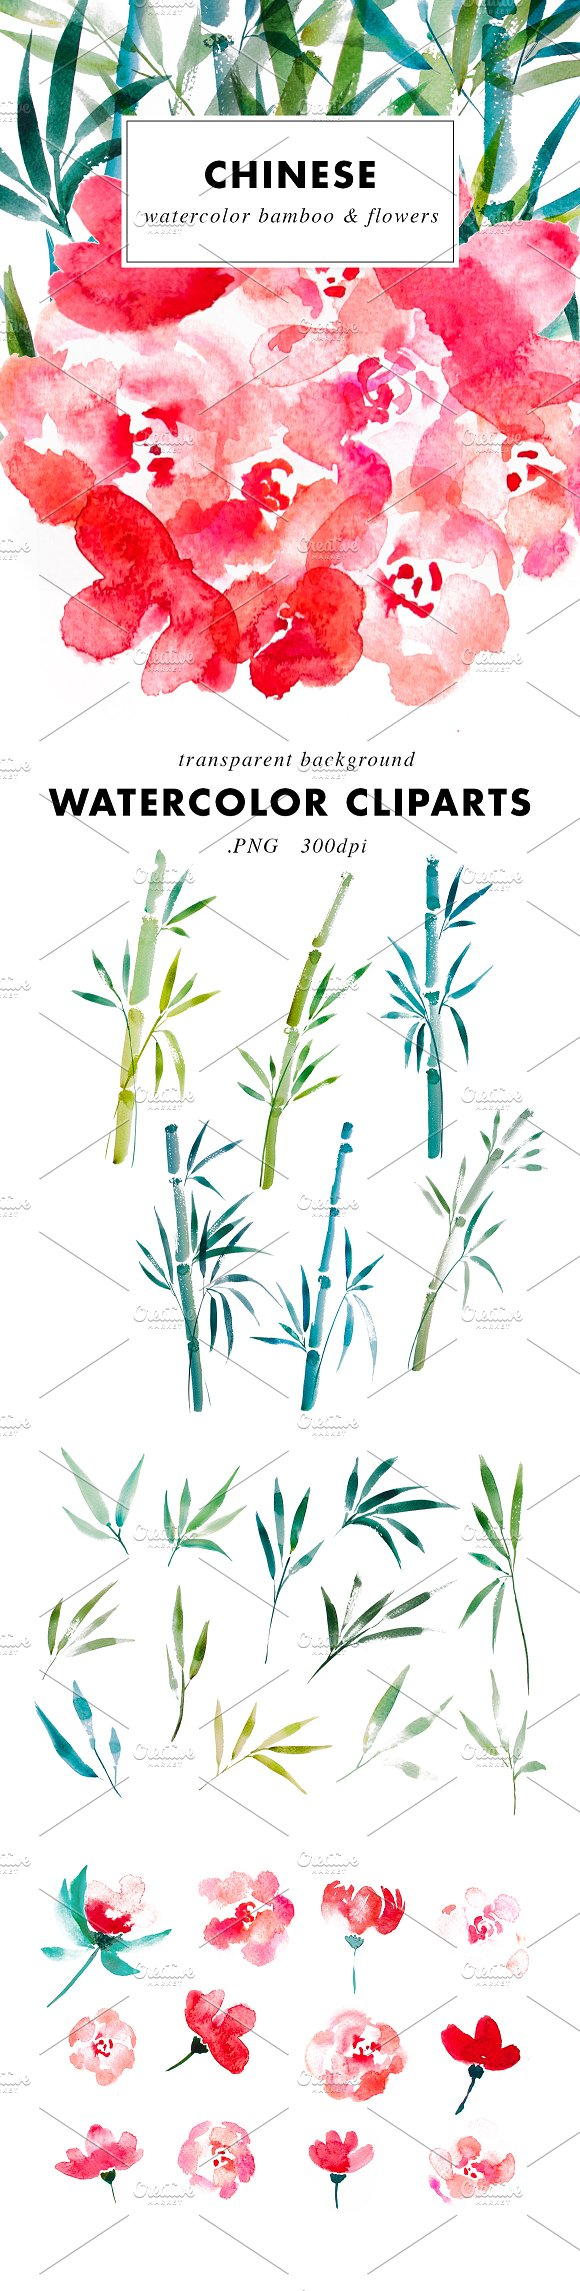 Chinese Watercolor Flowers Bamboo